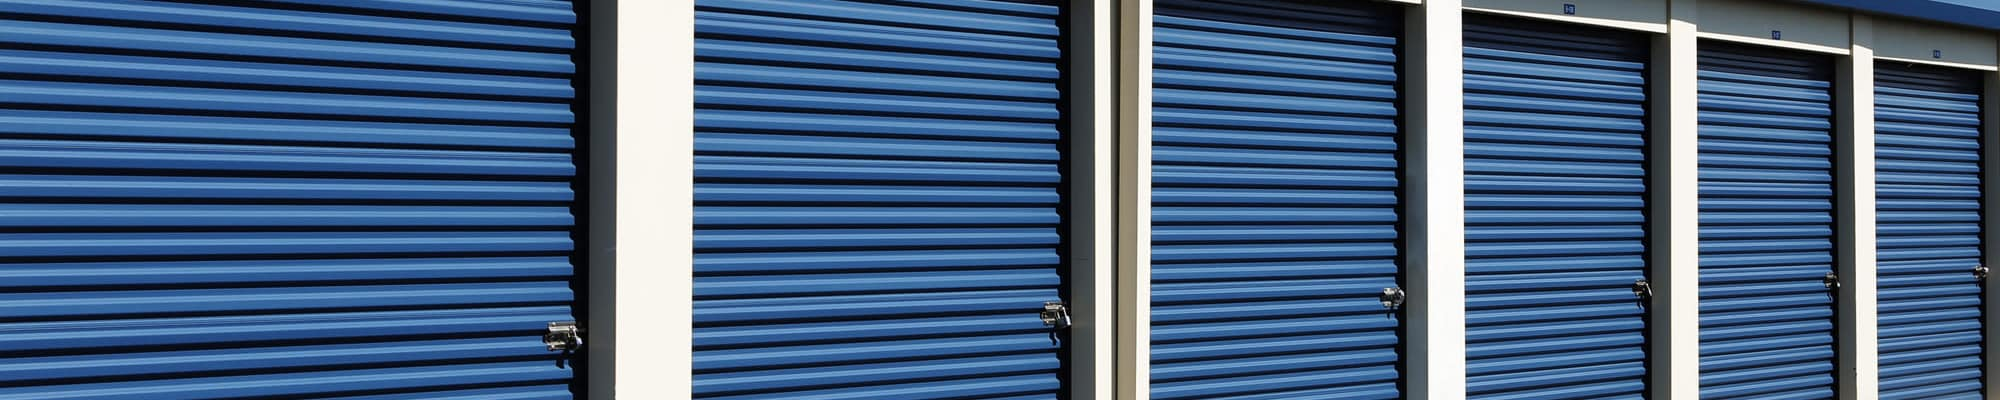 Self storage solutions in Florence, Alabama